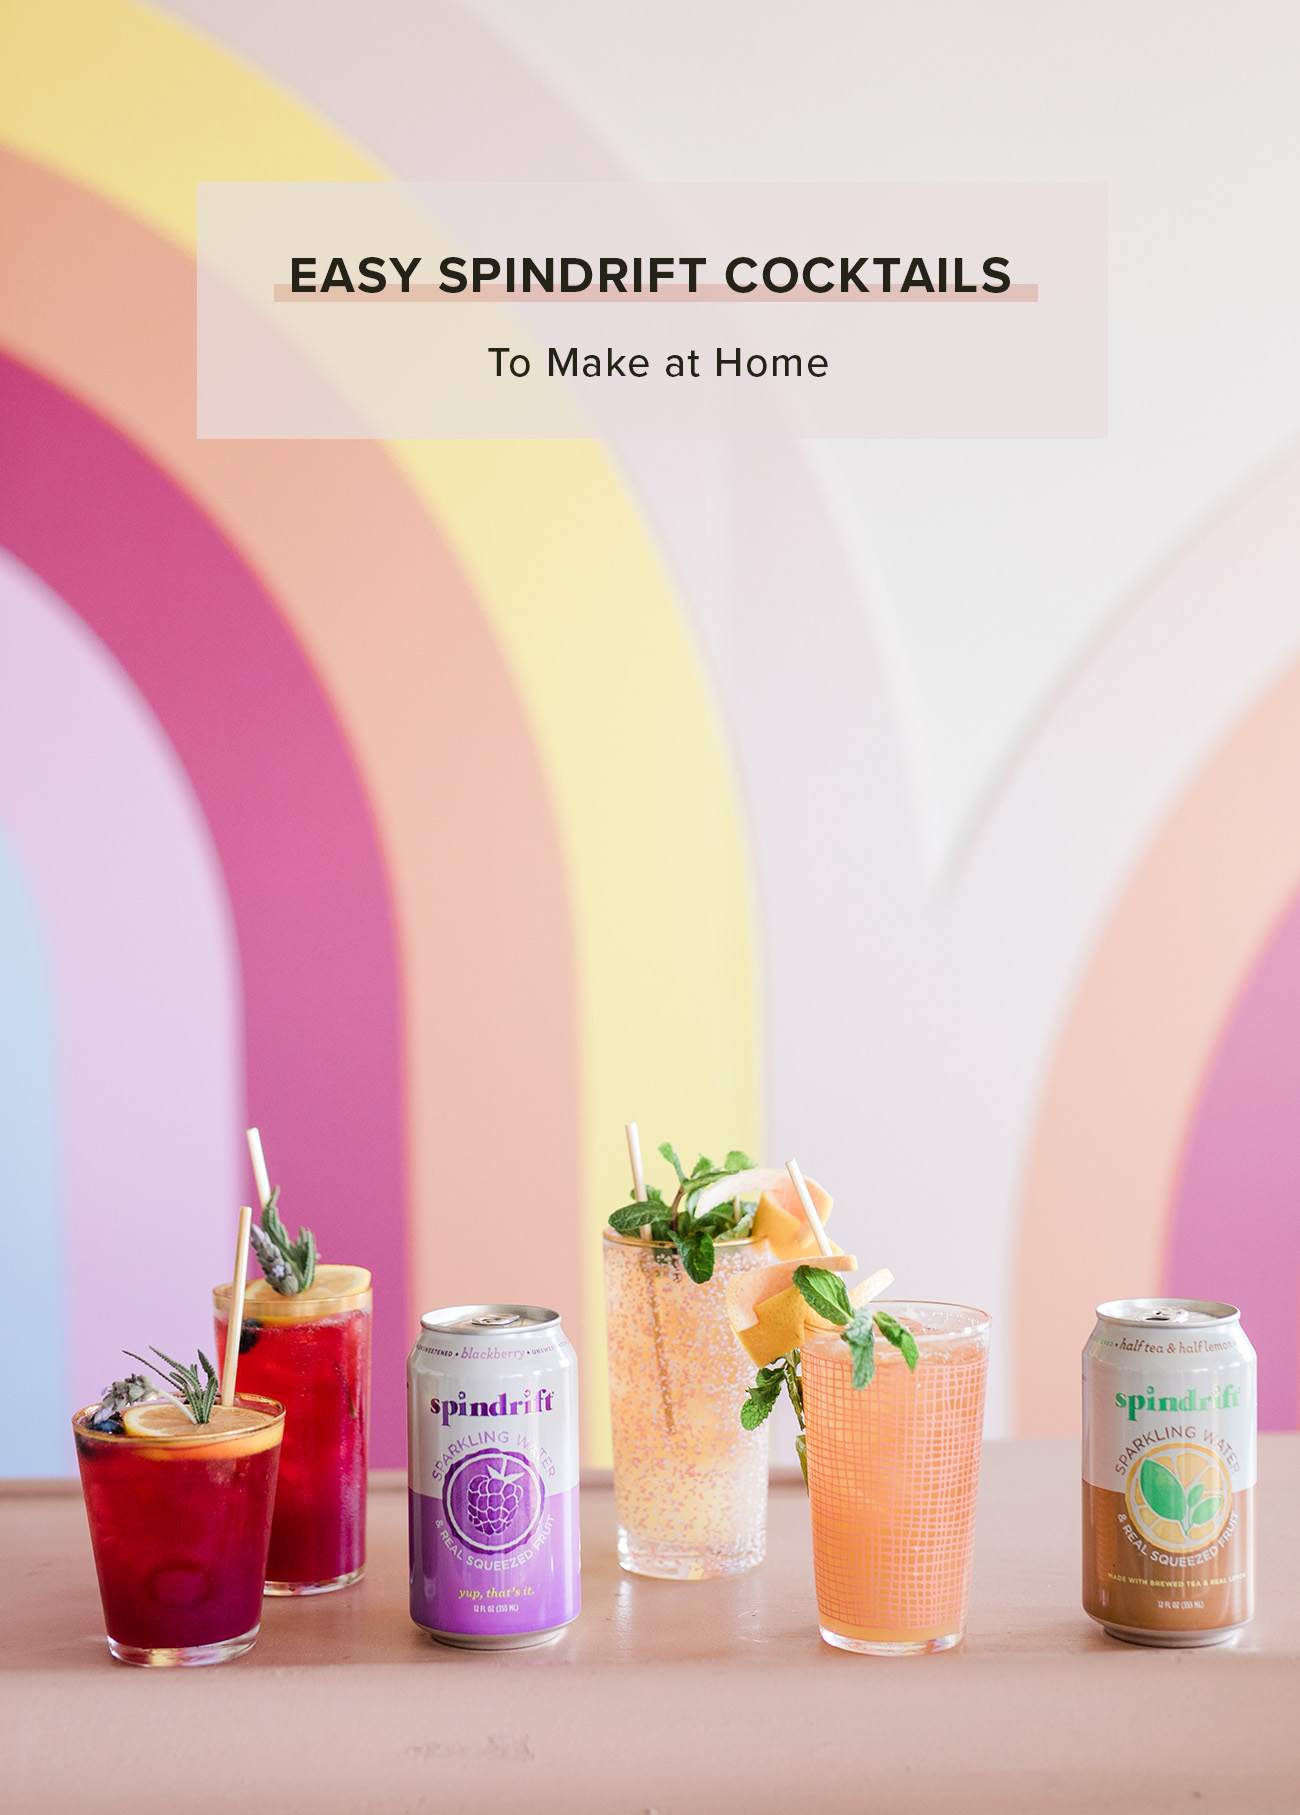 Spindrift cocktails to make at home